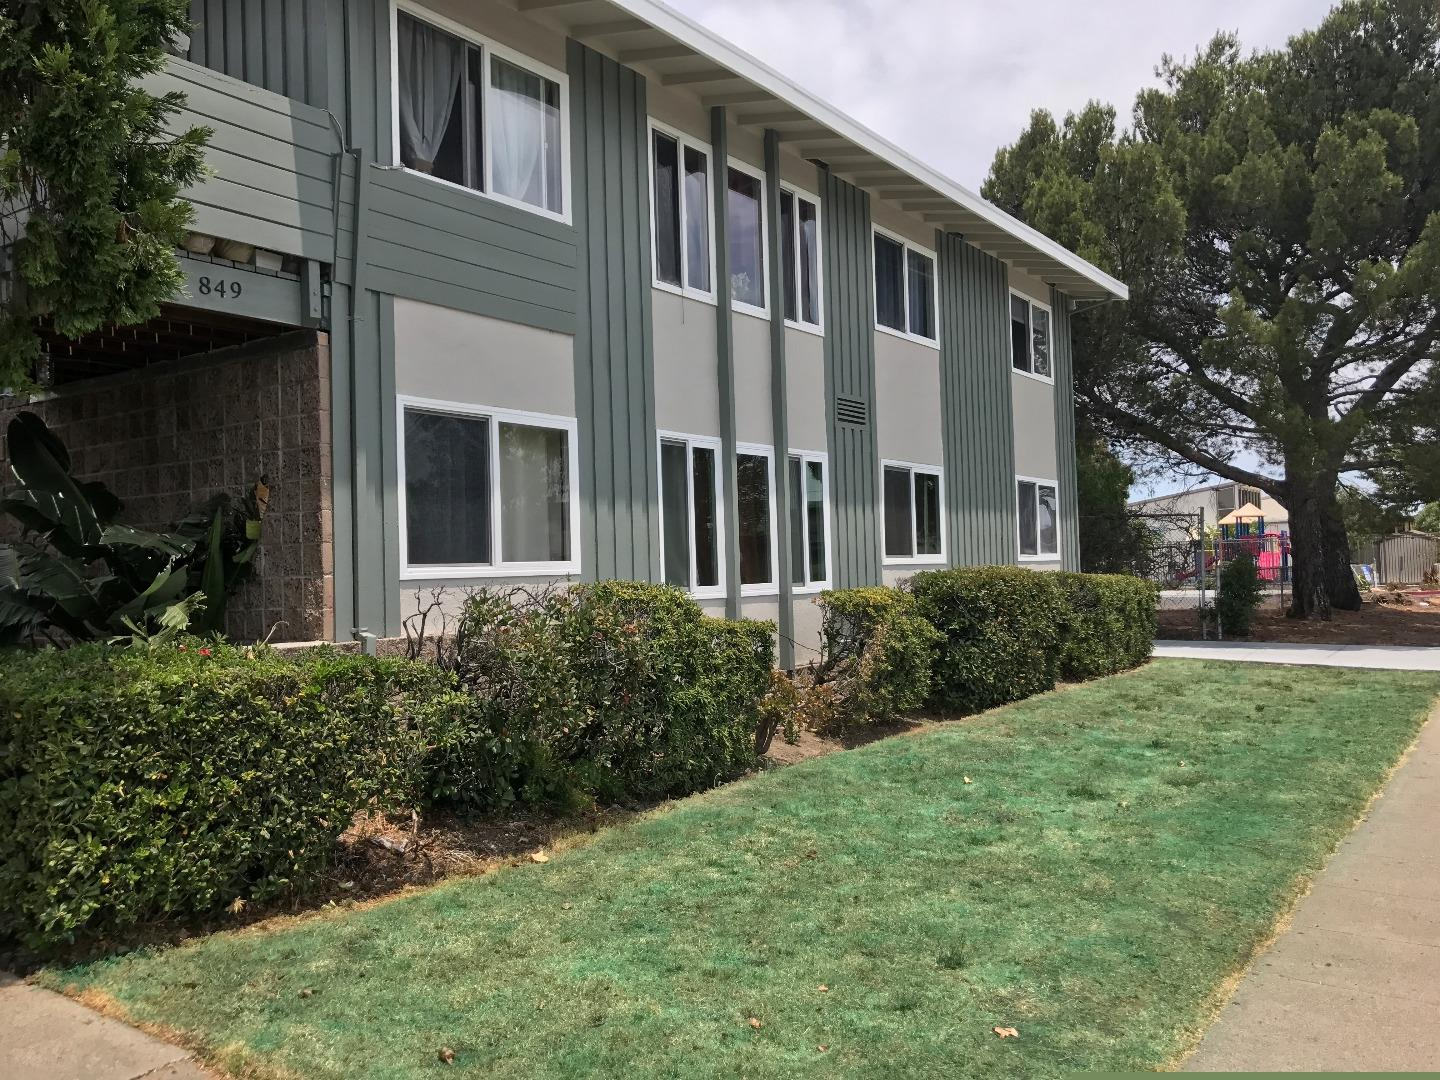 Multi-Family Home for Sale at 849 Bermuda Drive San Mateo, California 94403 United States